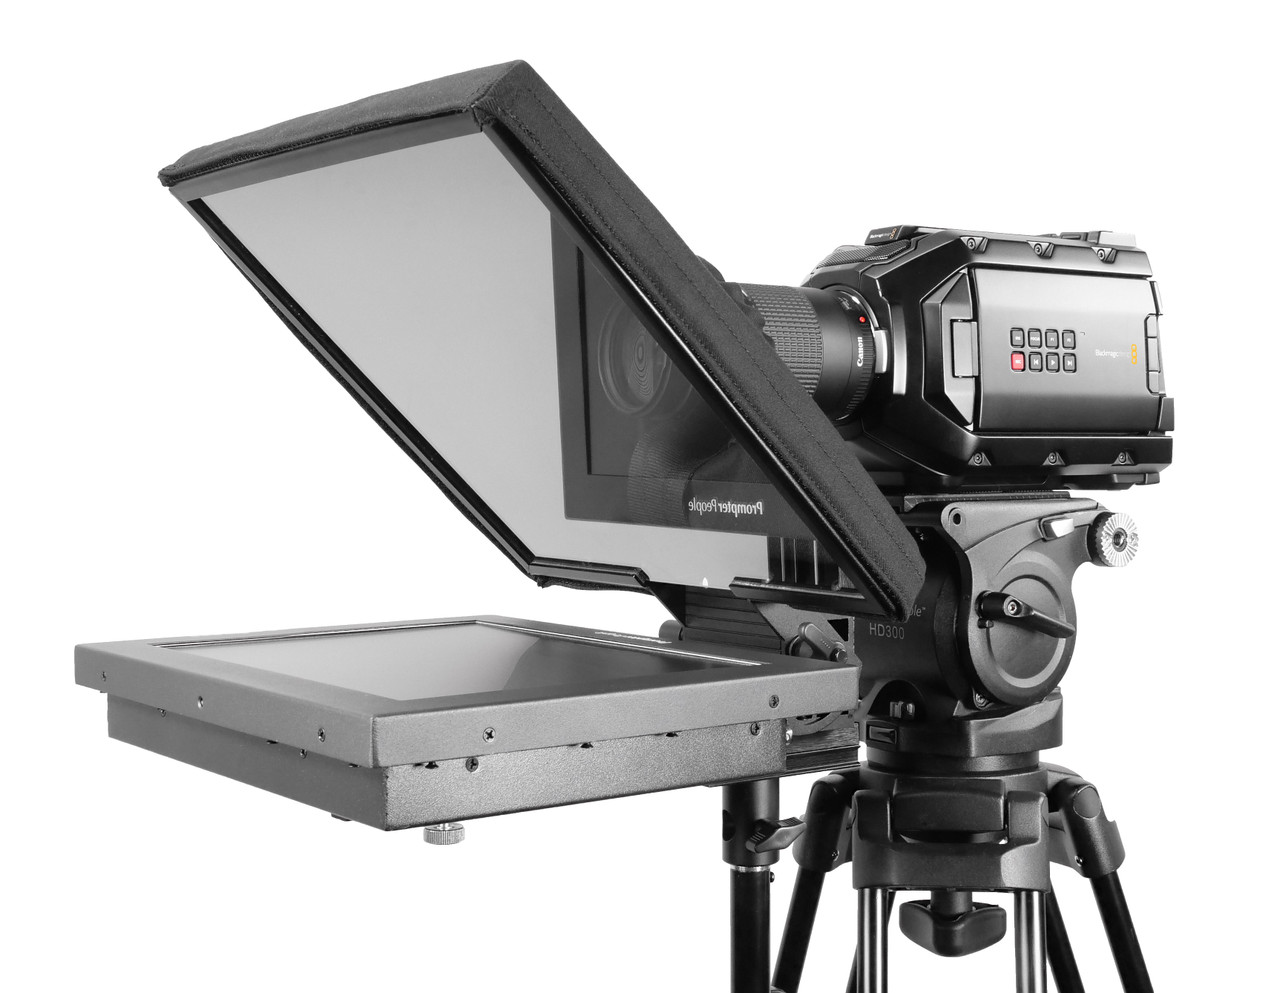 UltraFlex 12 FreeStanding Teleprompter - High Bright 1000 NIT Free Prompting Software - Angled